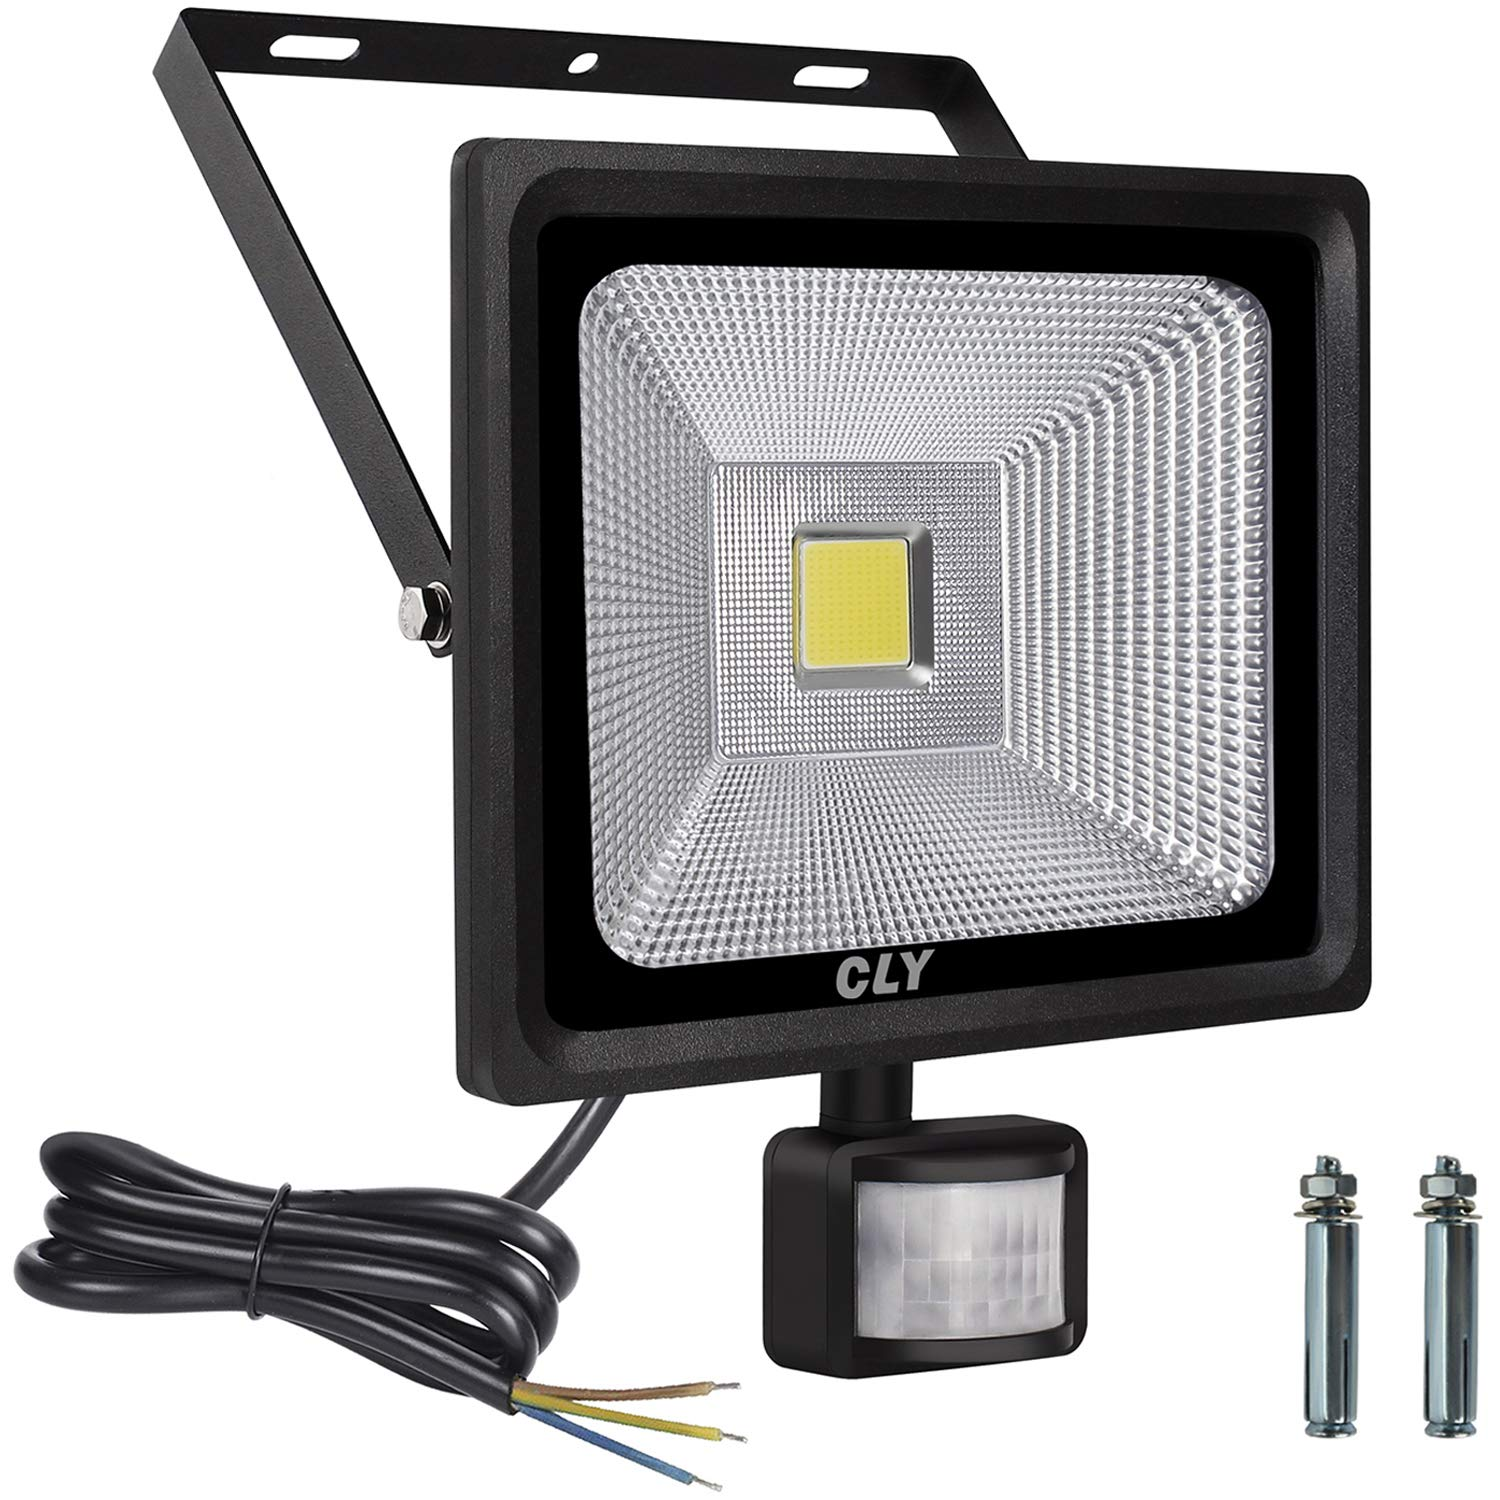 Cly 50W Outdoor Security Light with Motion Sensor, Led Floodlight with PIR, Super Bright Flood Lights with Sensor, Daylight White IP66 Waterproof Outdoor Sensor Light (Update 50w) [Energy Class A++]